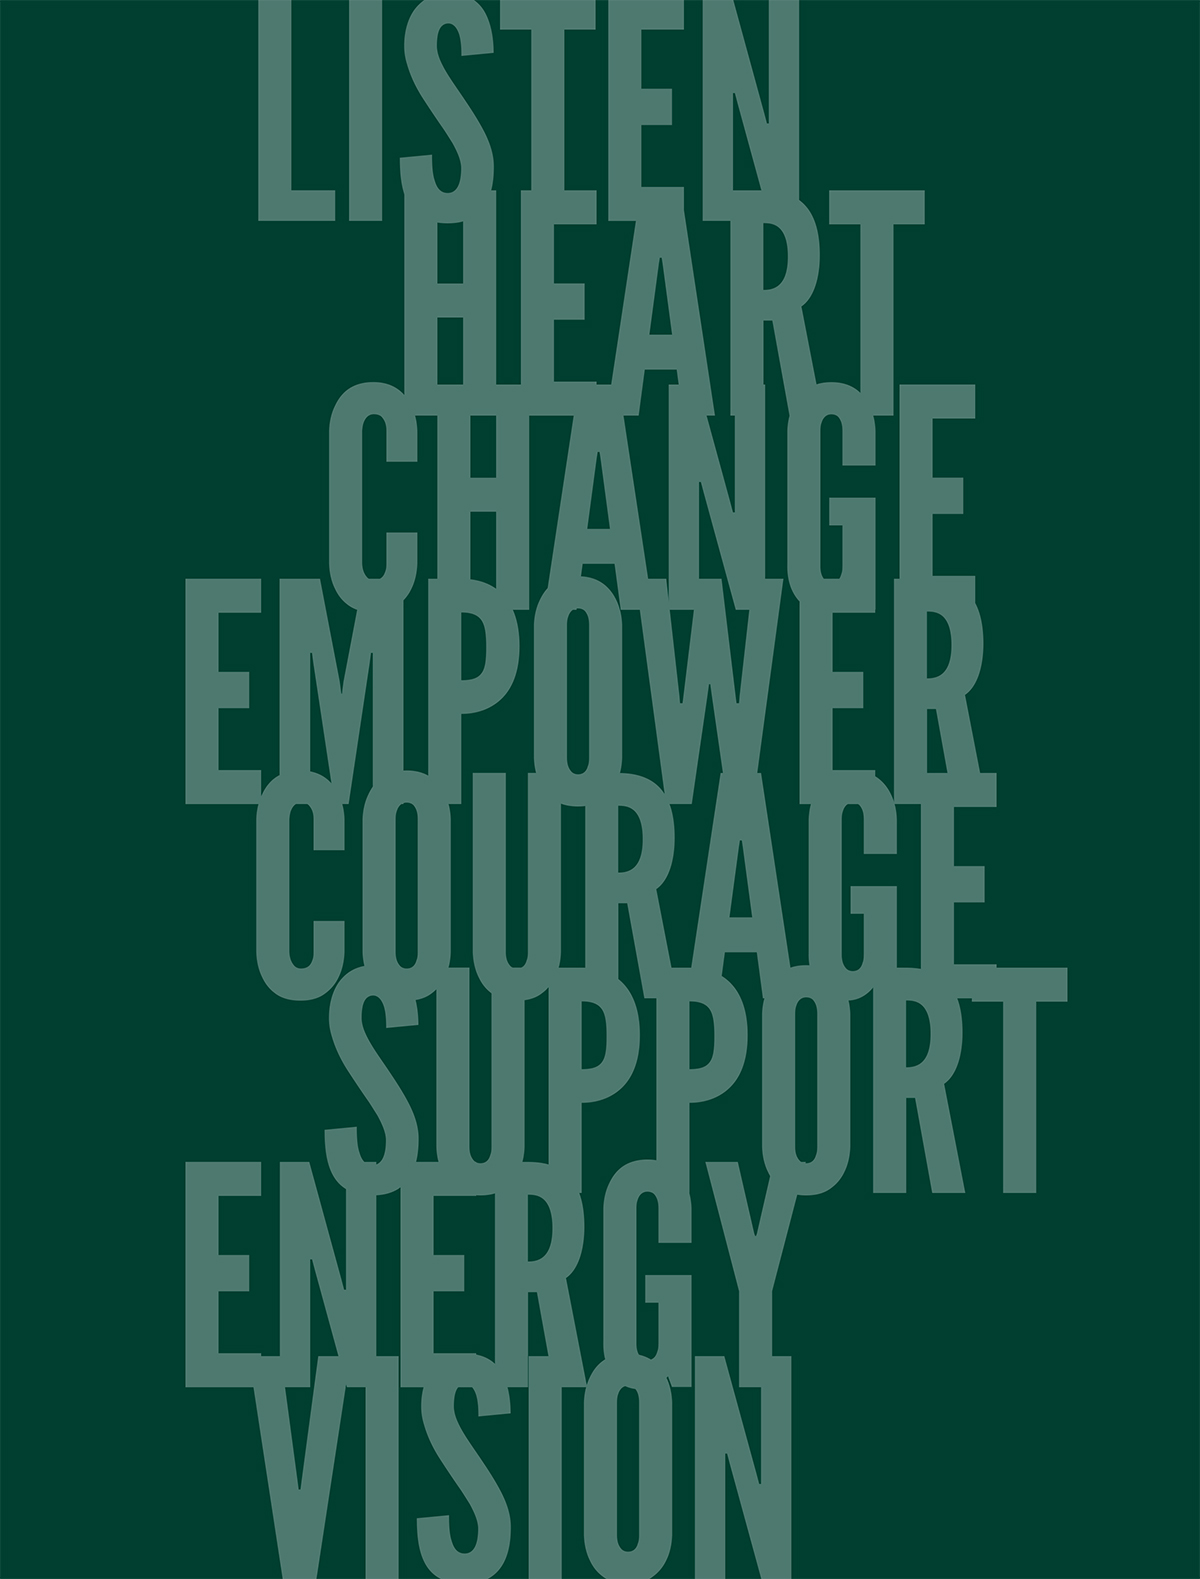 Listen. Heart. Change. Empower. Courage. Support. Energy. Vision.